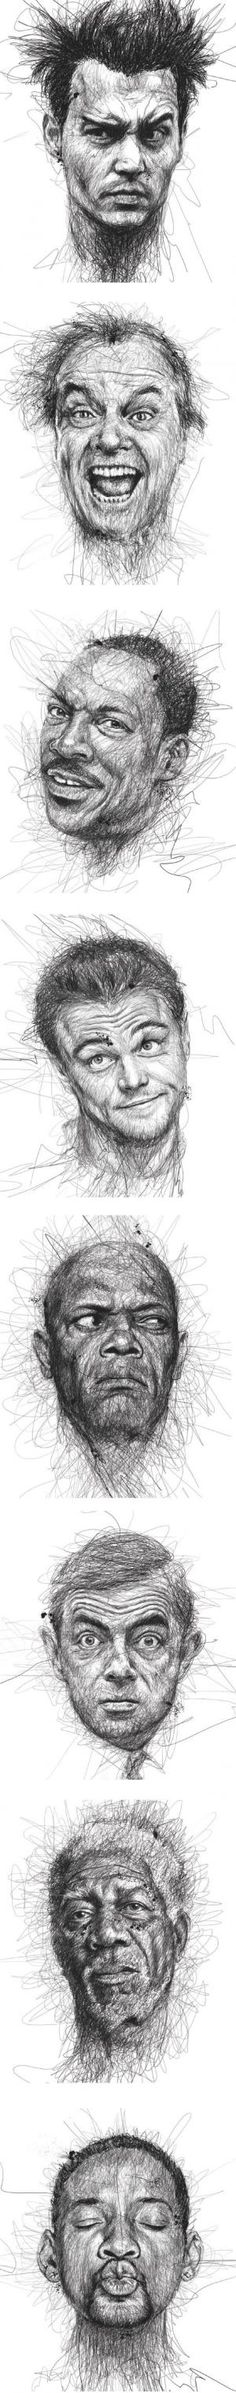 Amazing face sketches by Vince Low by clarissa